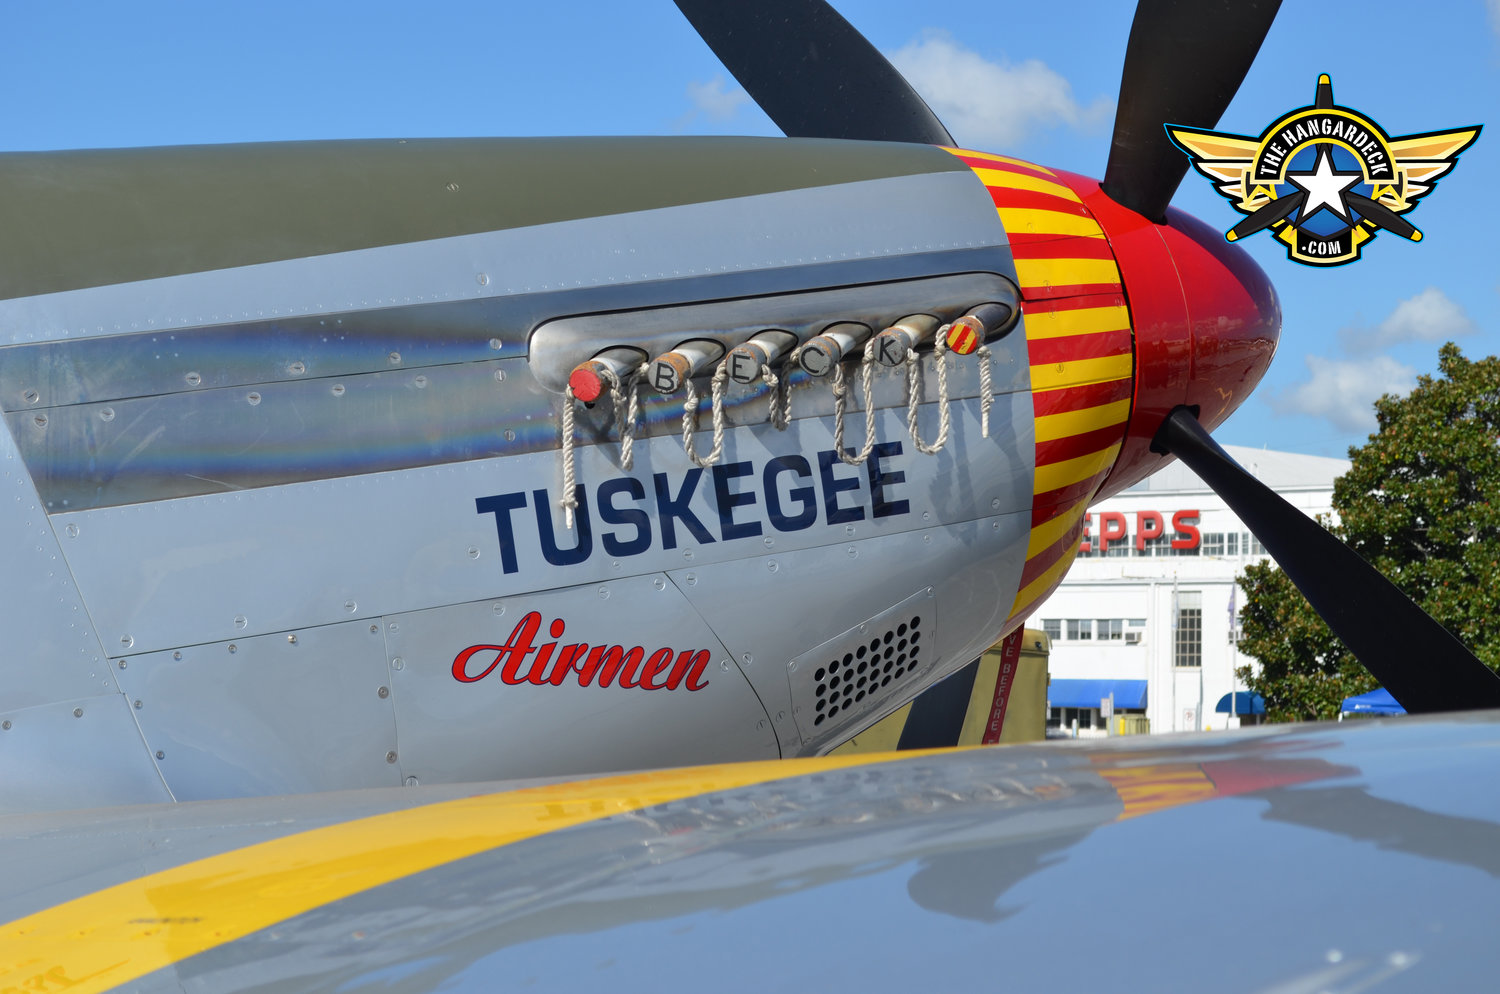 Episode #79  The Tuskegee Airman at the Atlanta Warbird